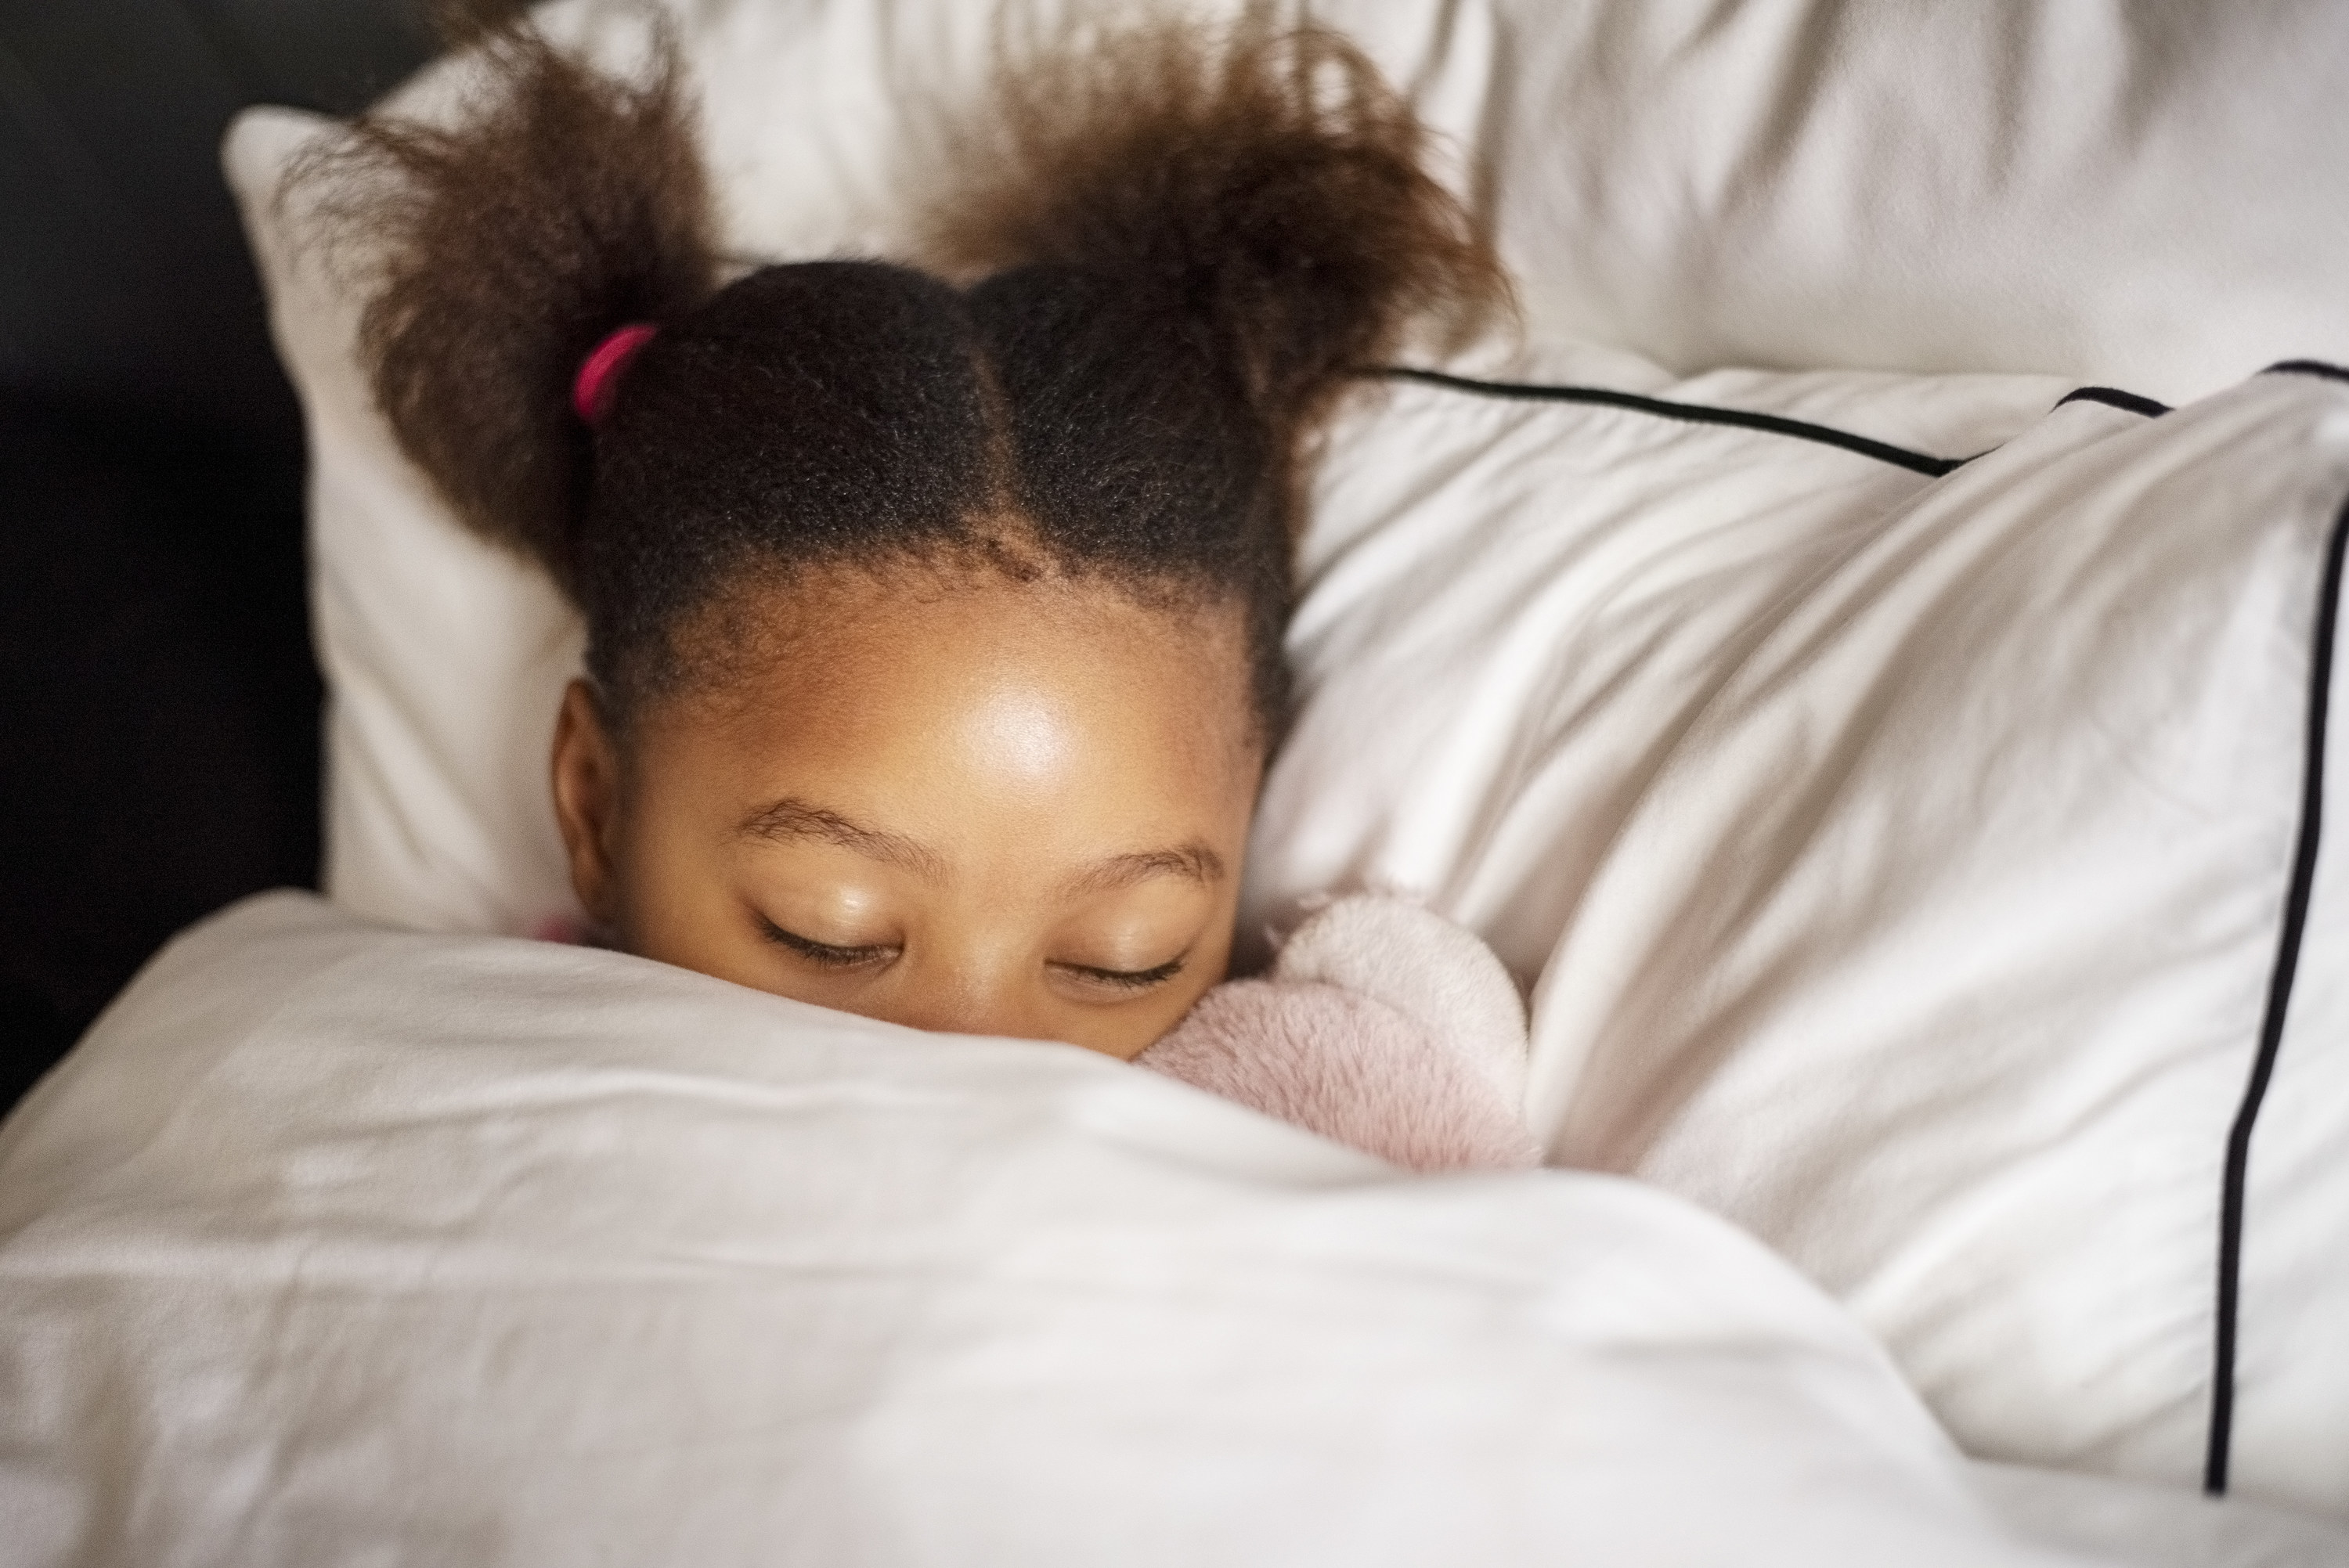 A young girl lays in bed with her eyes closed.